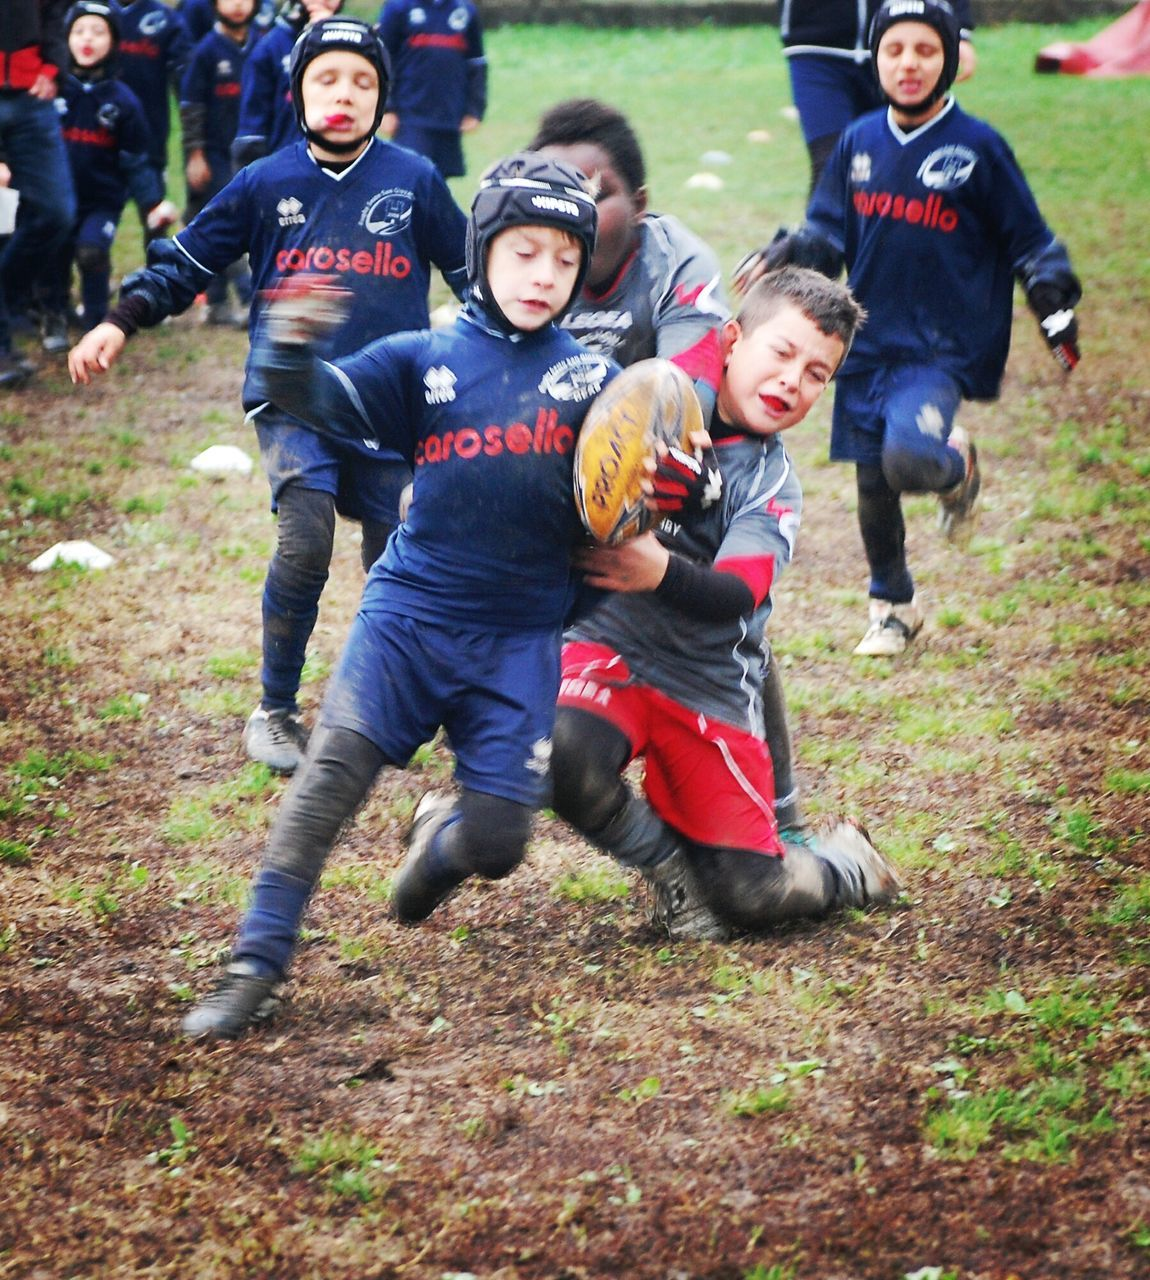 child, childhood, full length, boys, fun, children only, day, outdoors, uniform, togetherness, grass, american football - sport, people, portrait, human body part, friendship, adult